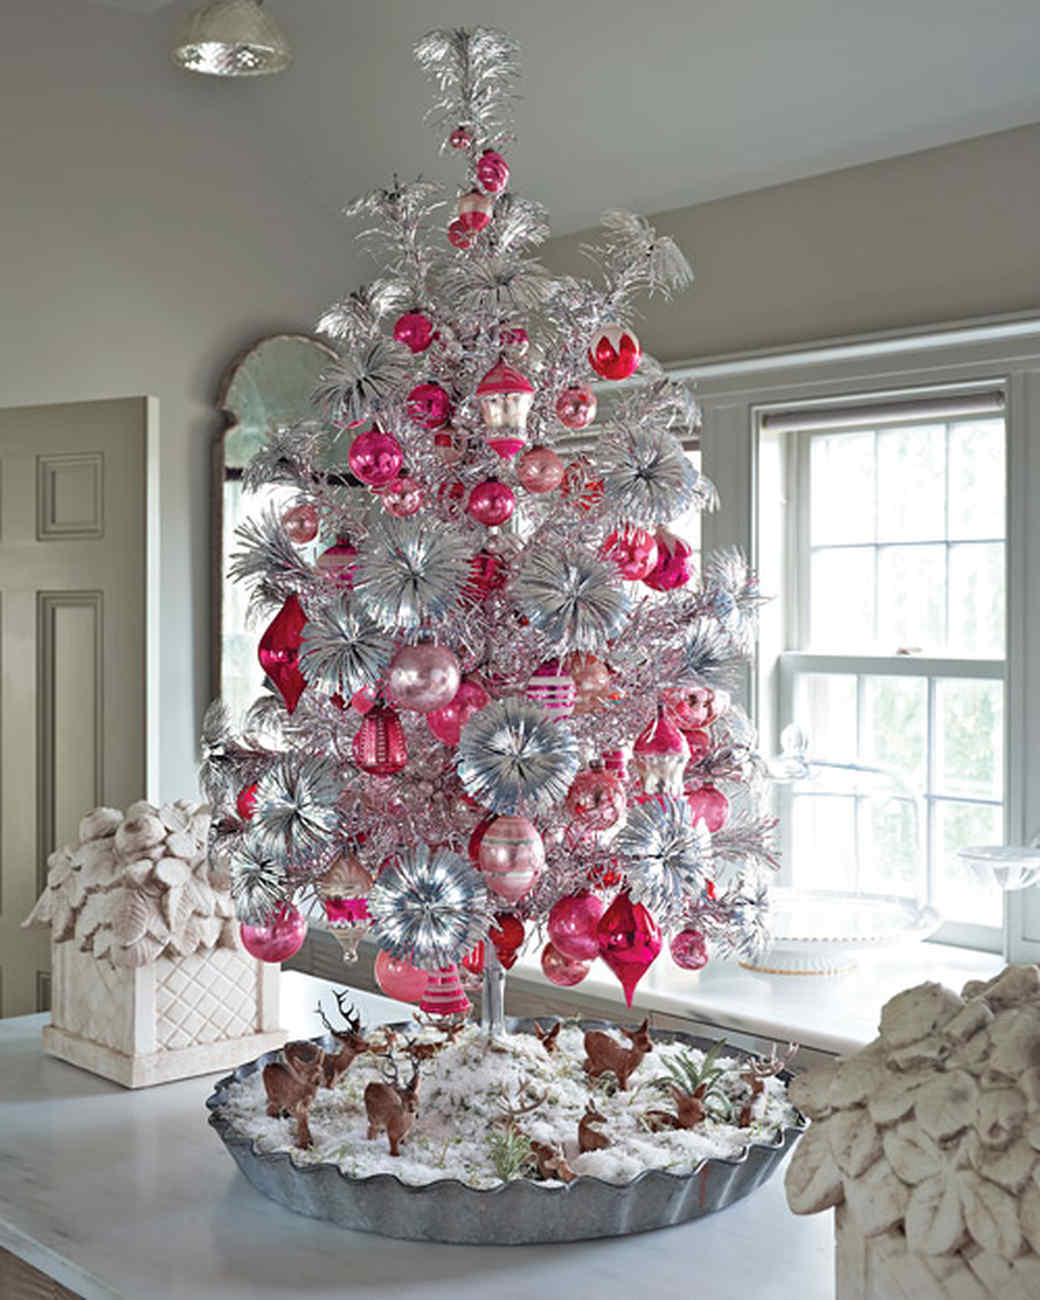 28 creative christmas tree decorating ideas martha stewart - Pink Christmas Tree Decorations